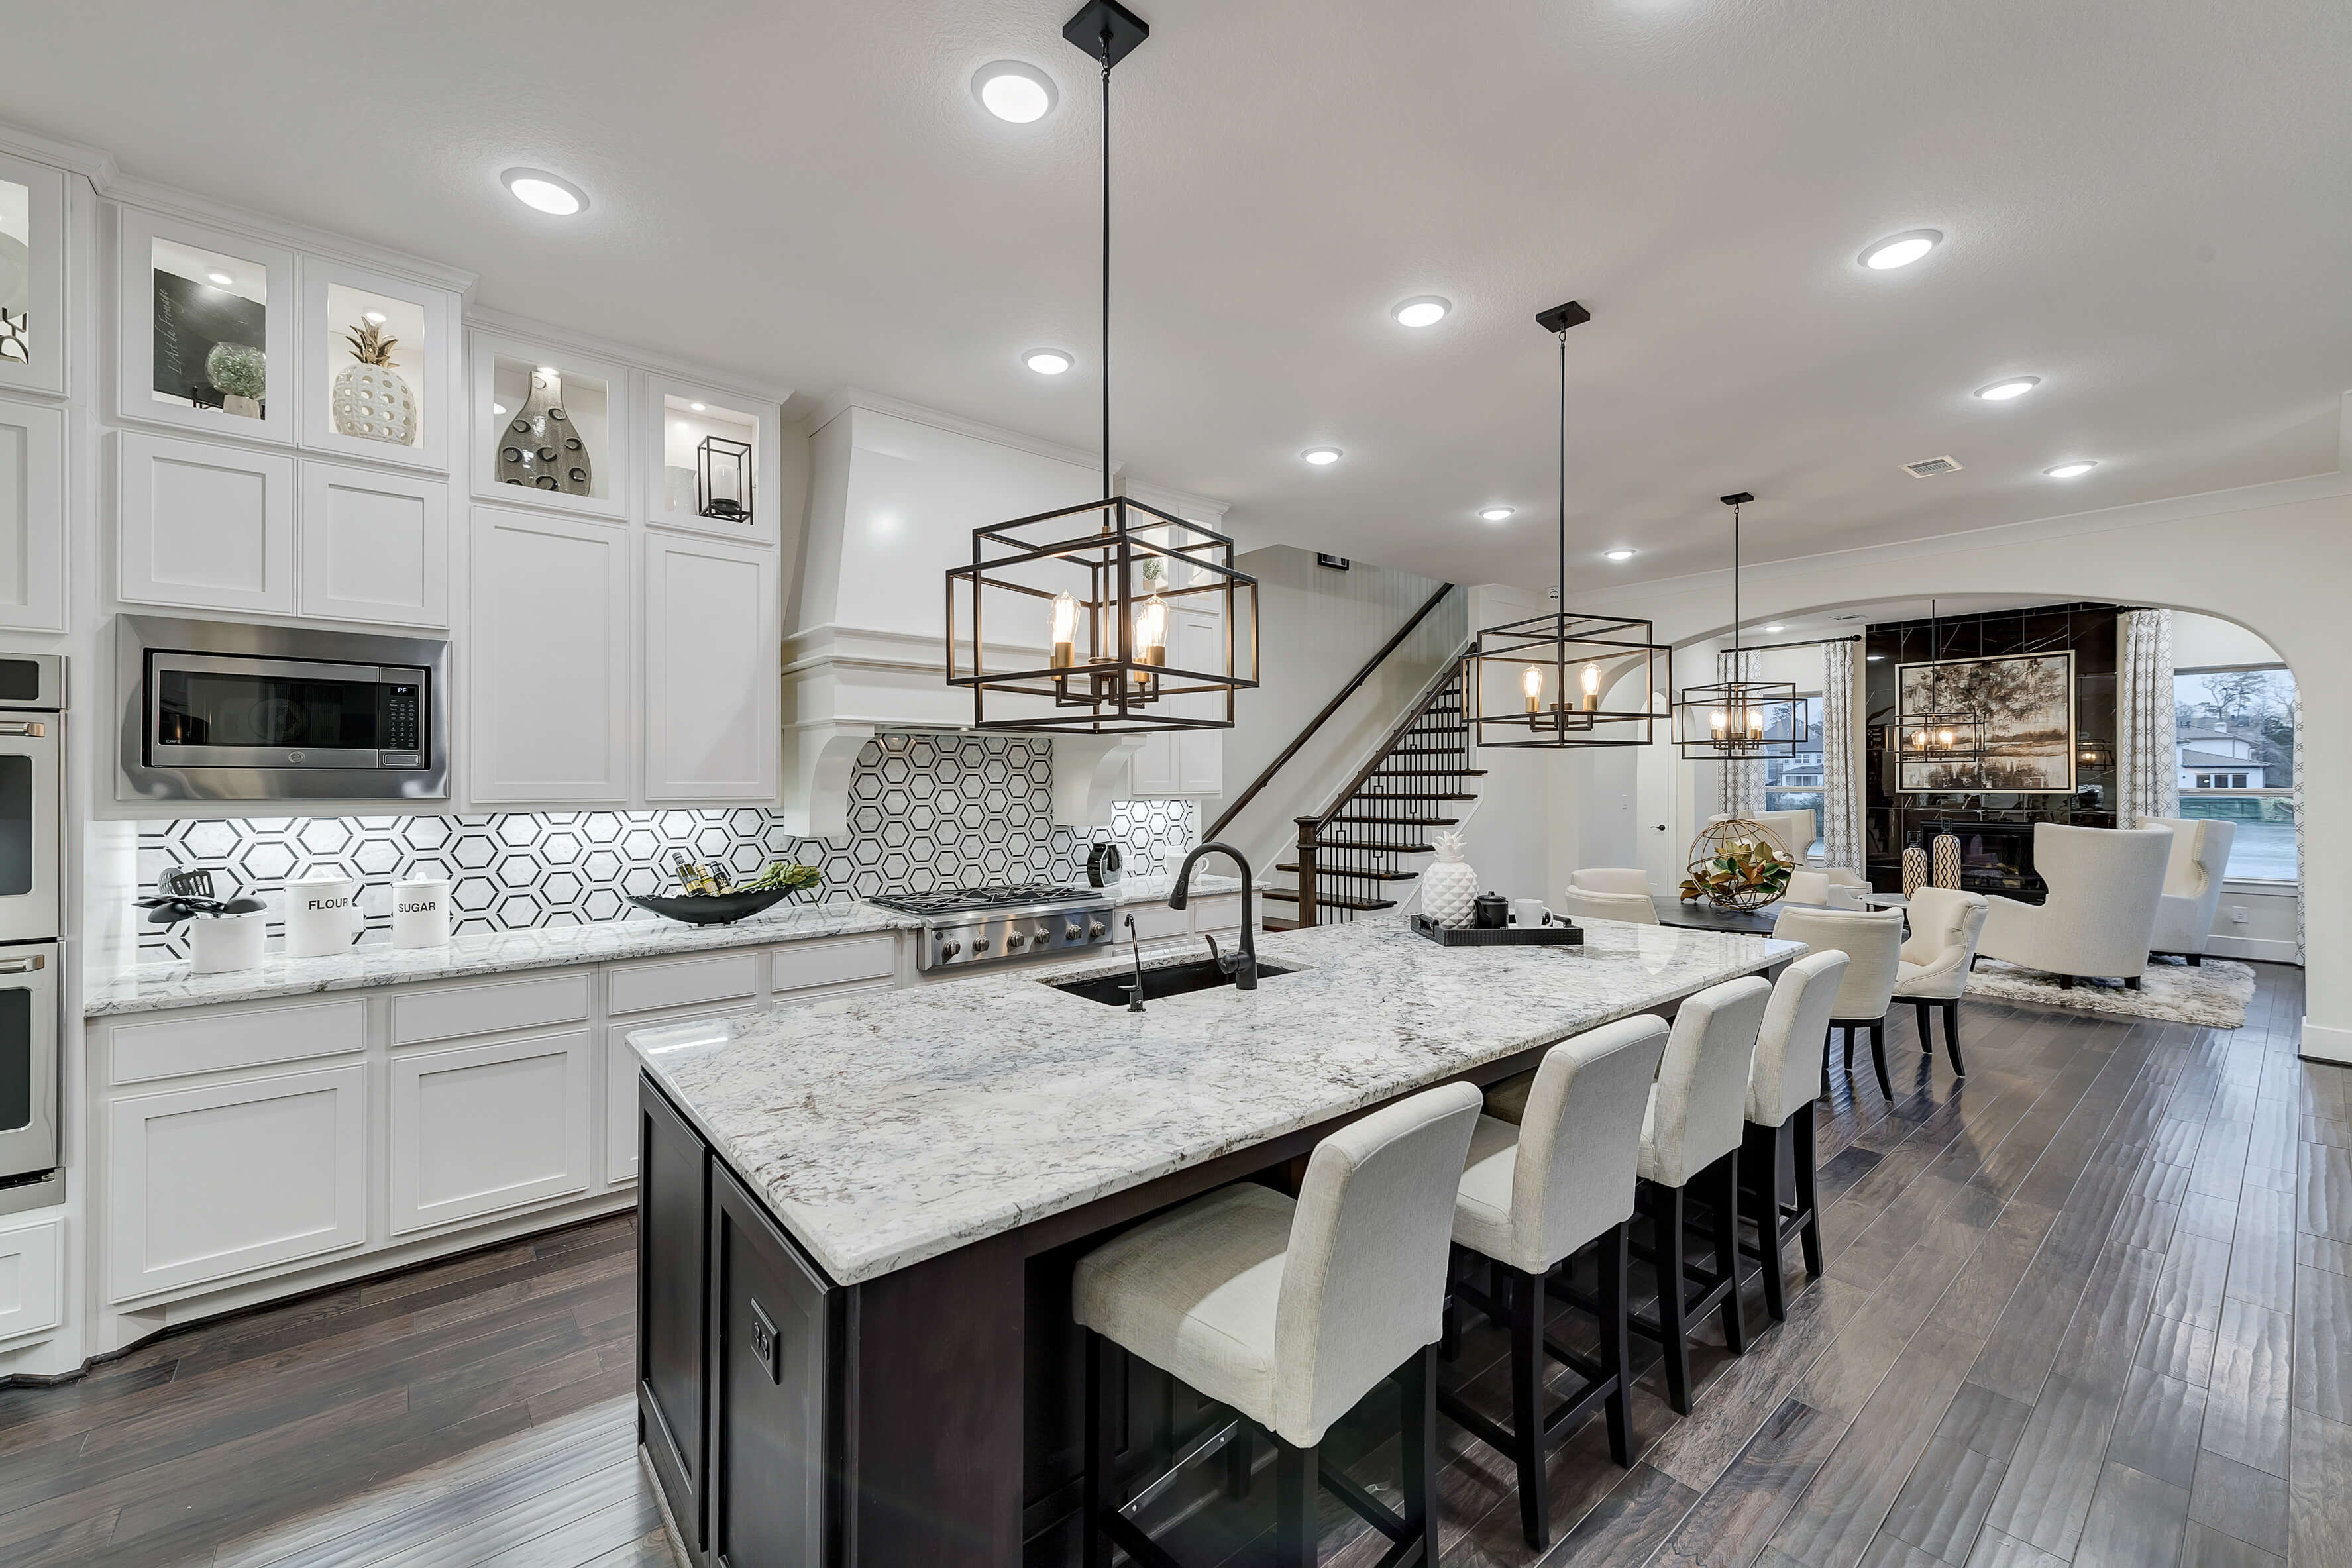 Kitchen Cabinet Ideas From A Pro Details Matter Second House On The Right